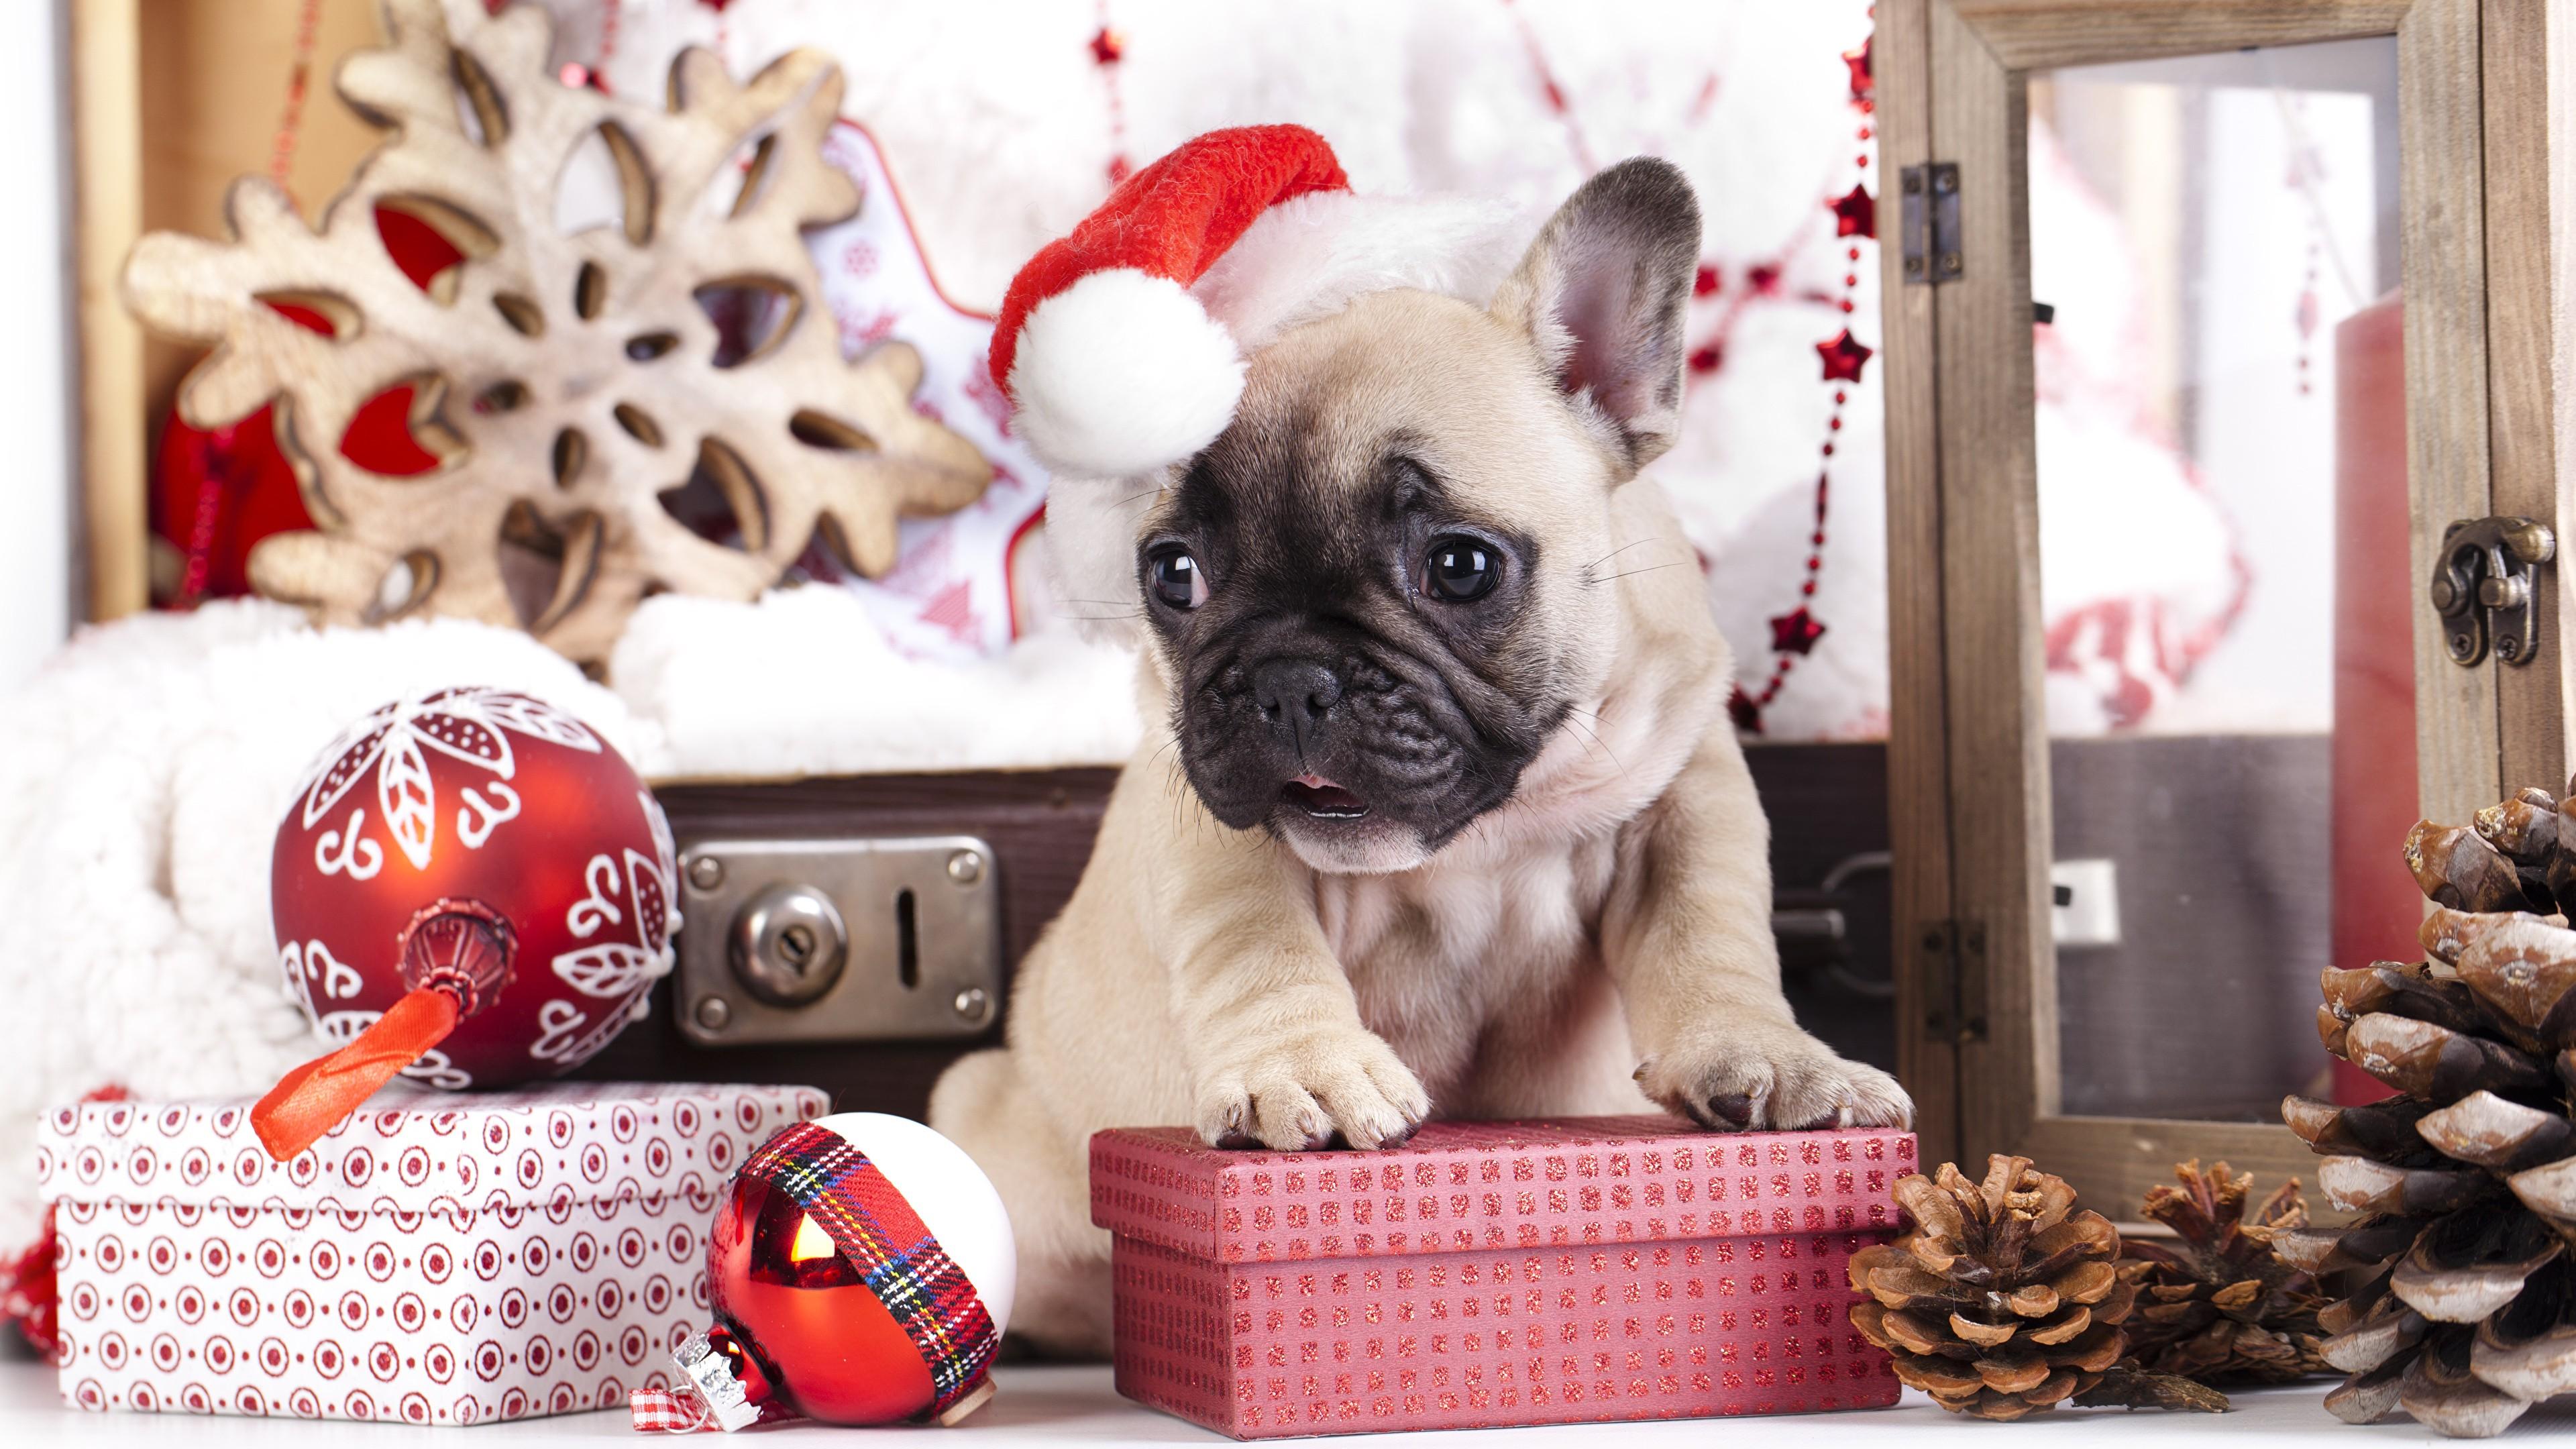 Wallpaper Pug puppy celebrating Christmas